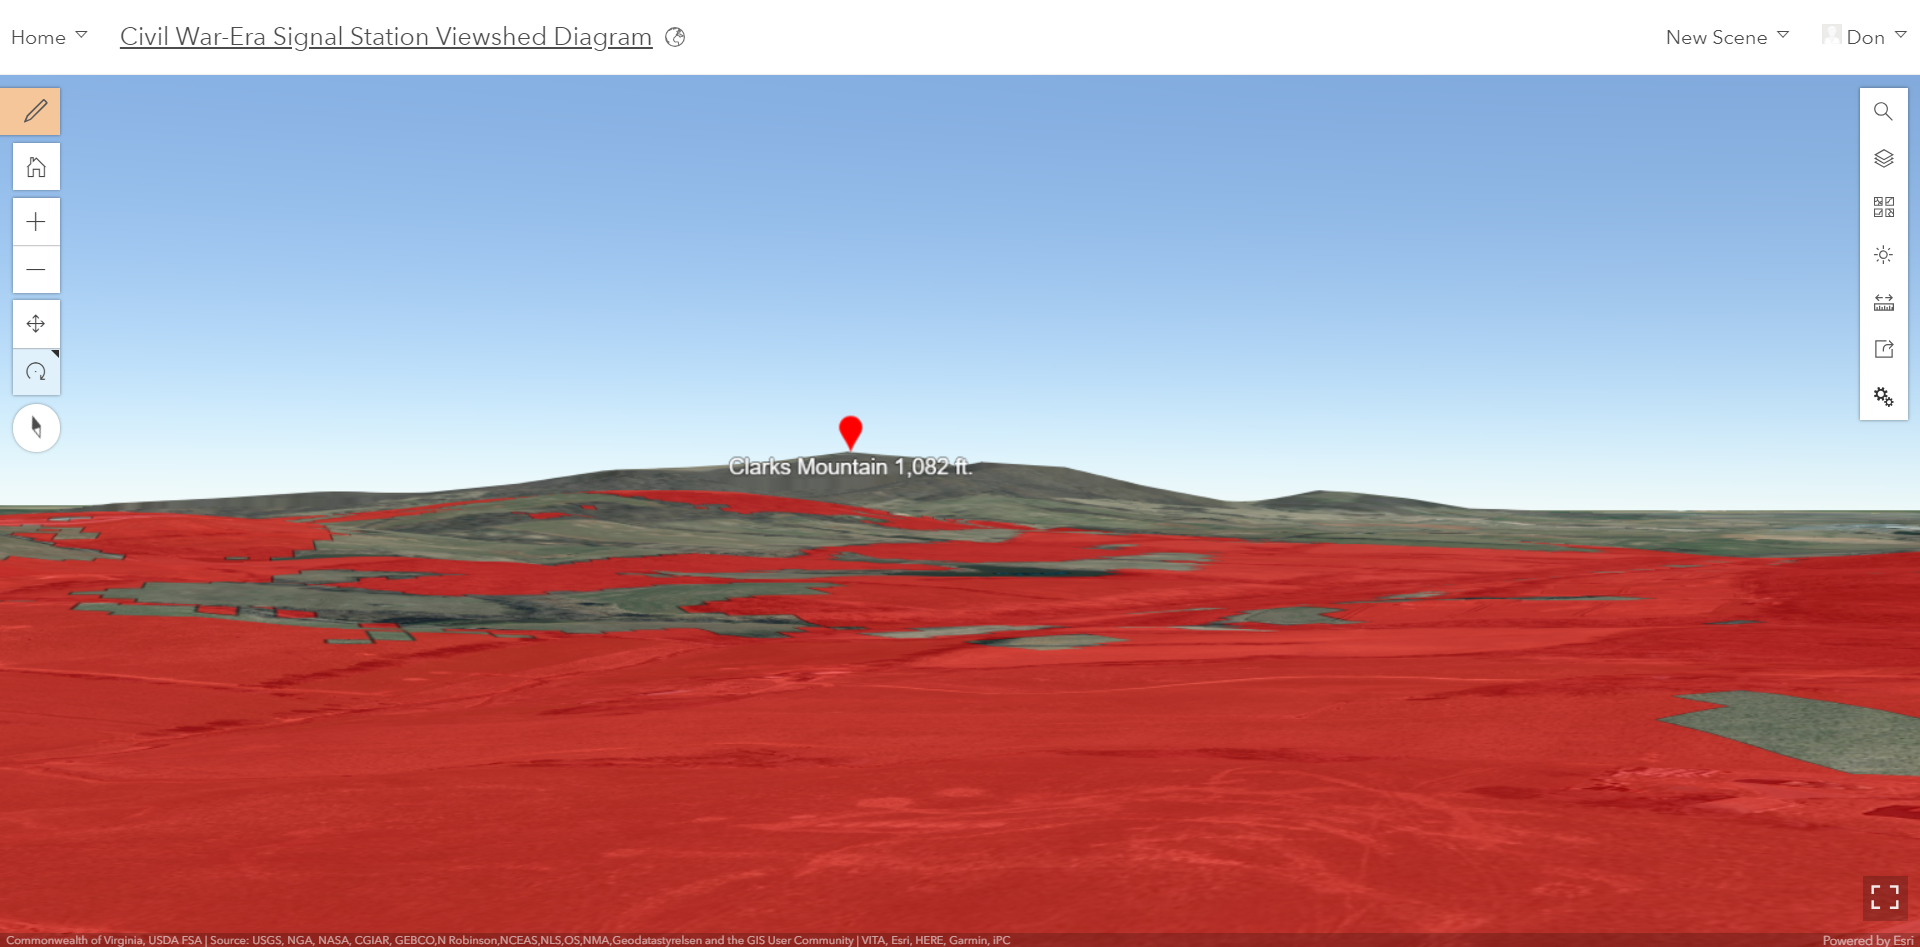 Historical Land Preservation Viewshed Analysis